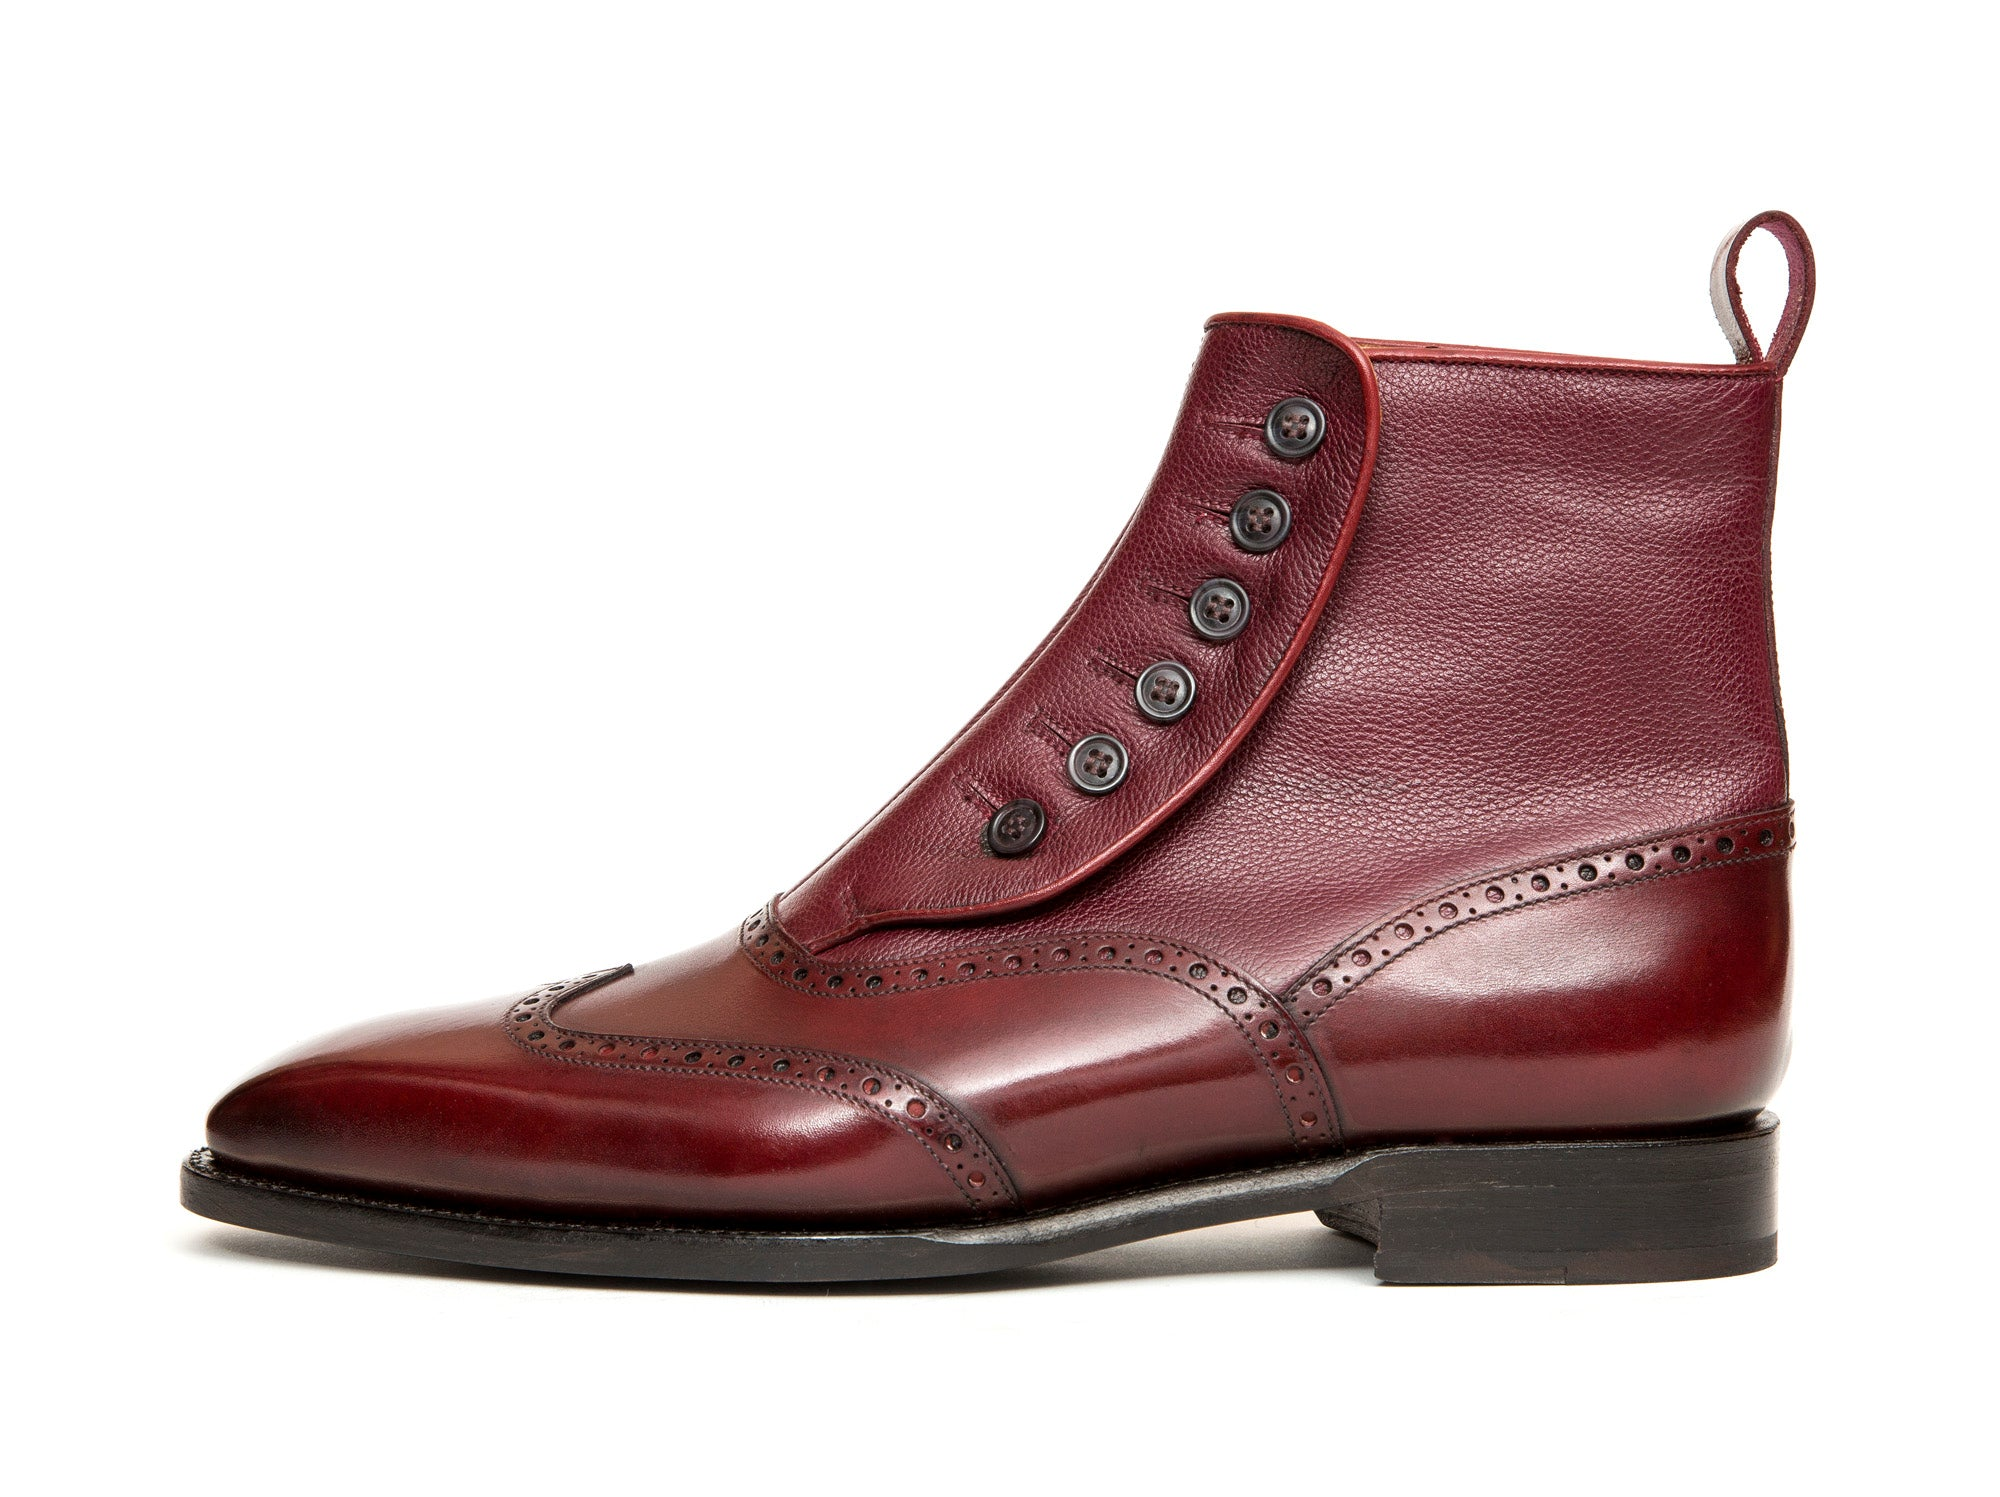 Grandview - MTO - Burgundy Calf / Burgundy Soft Grain - MGF Last - Single Leather Sole